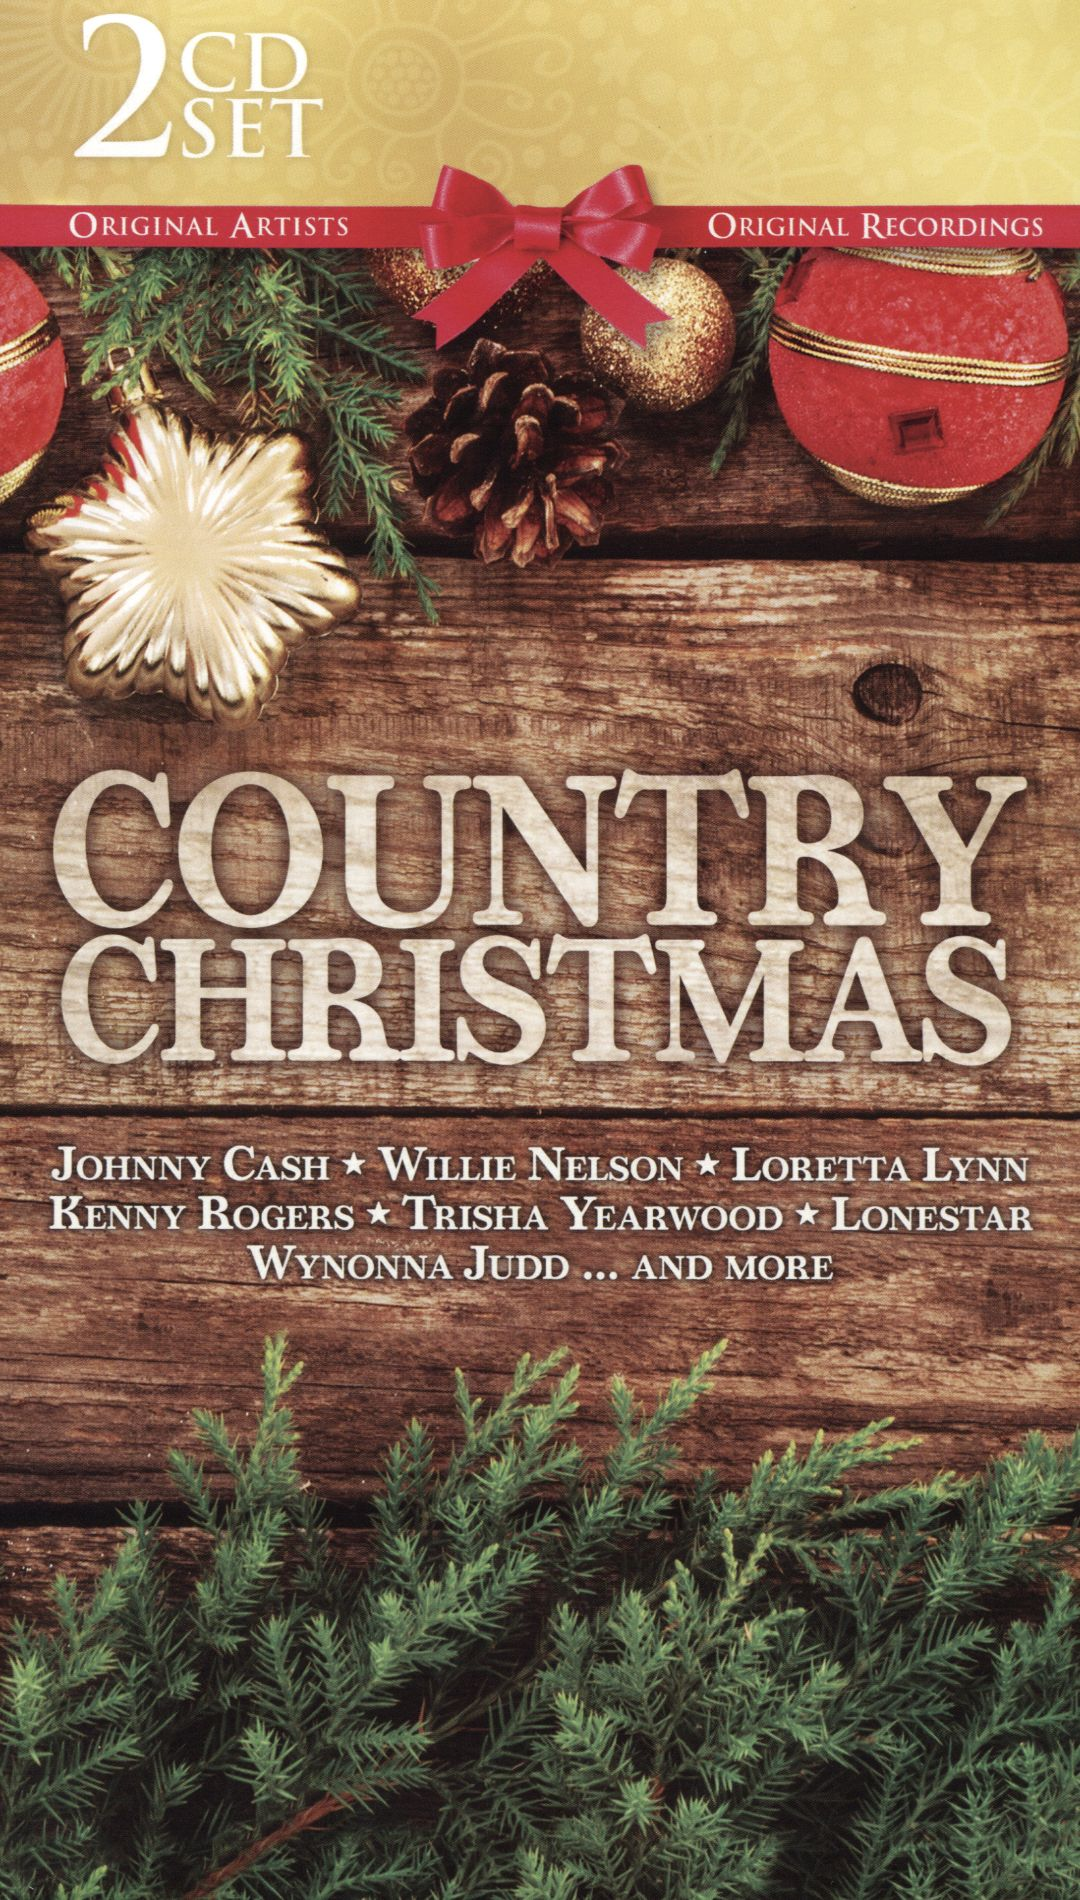 Country Christmas [Rhino] - Various Artists | Songs, Reviews ...